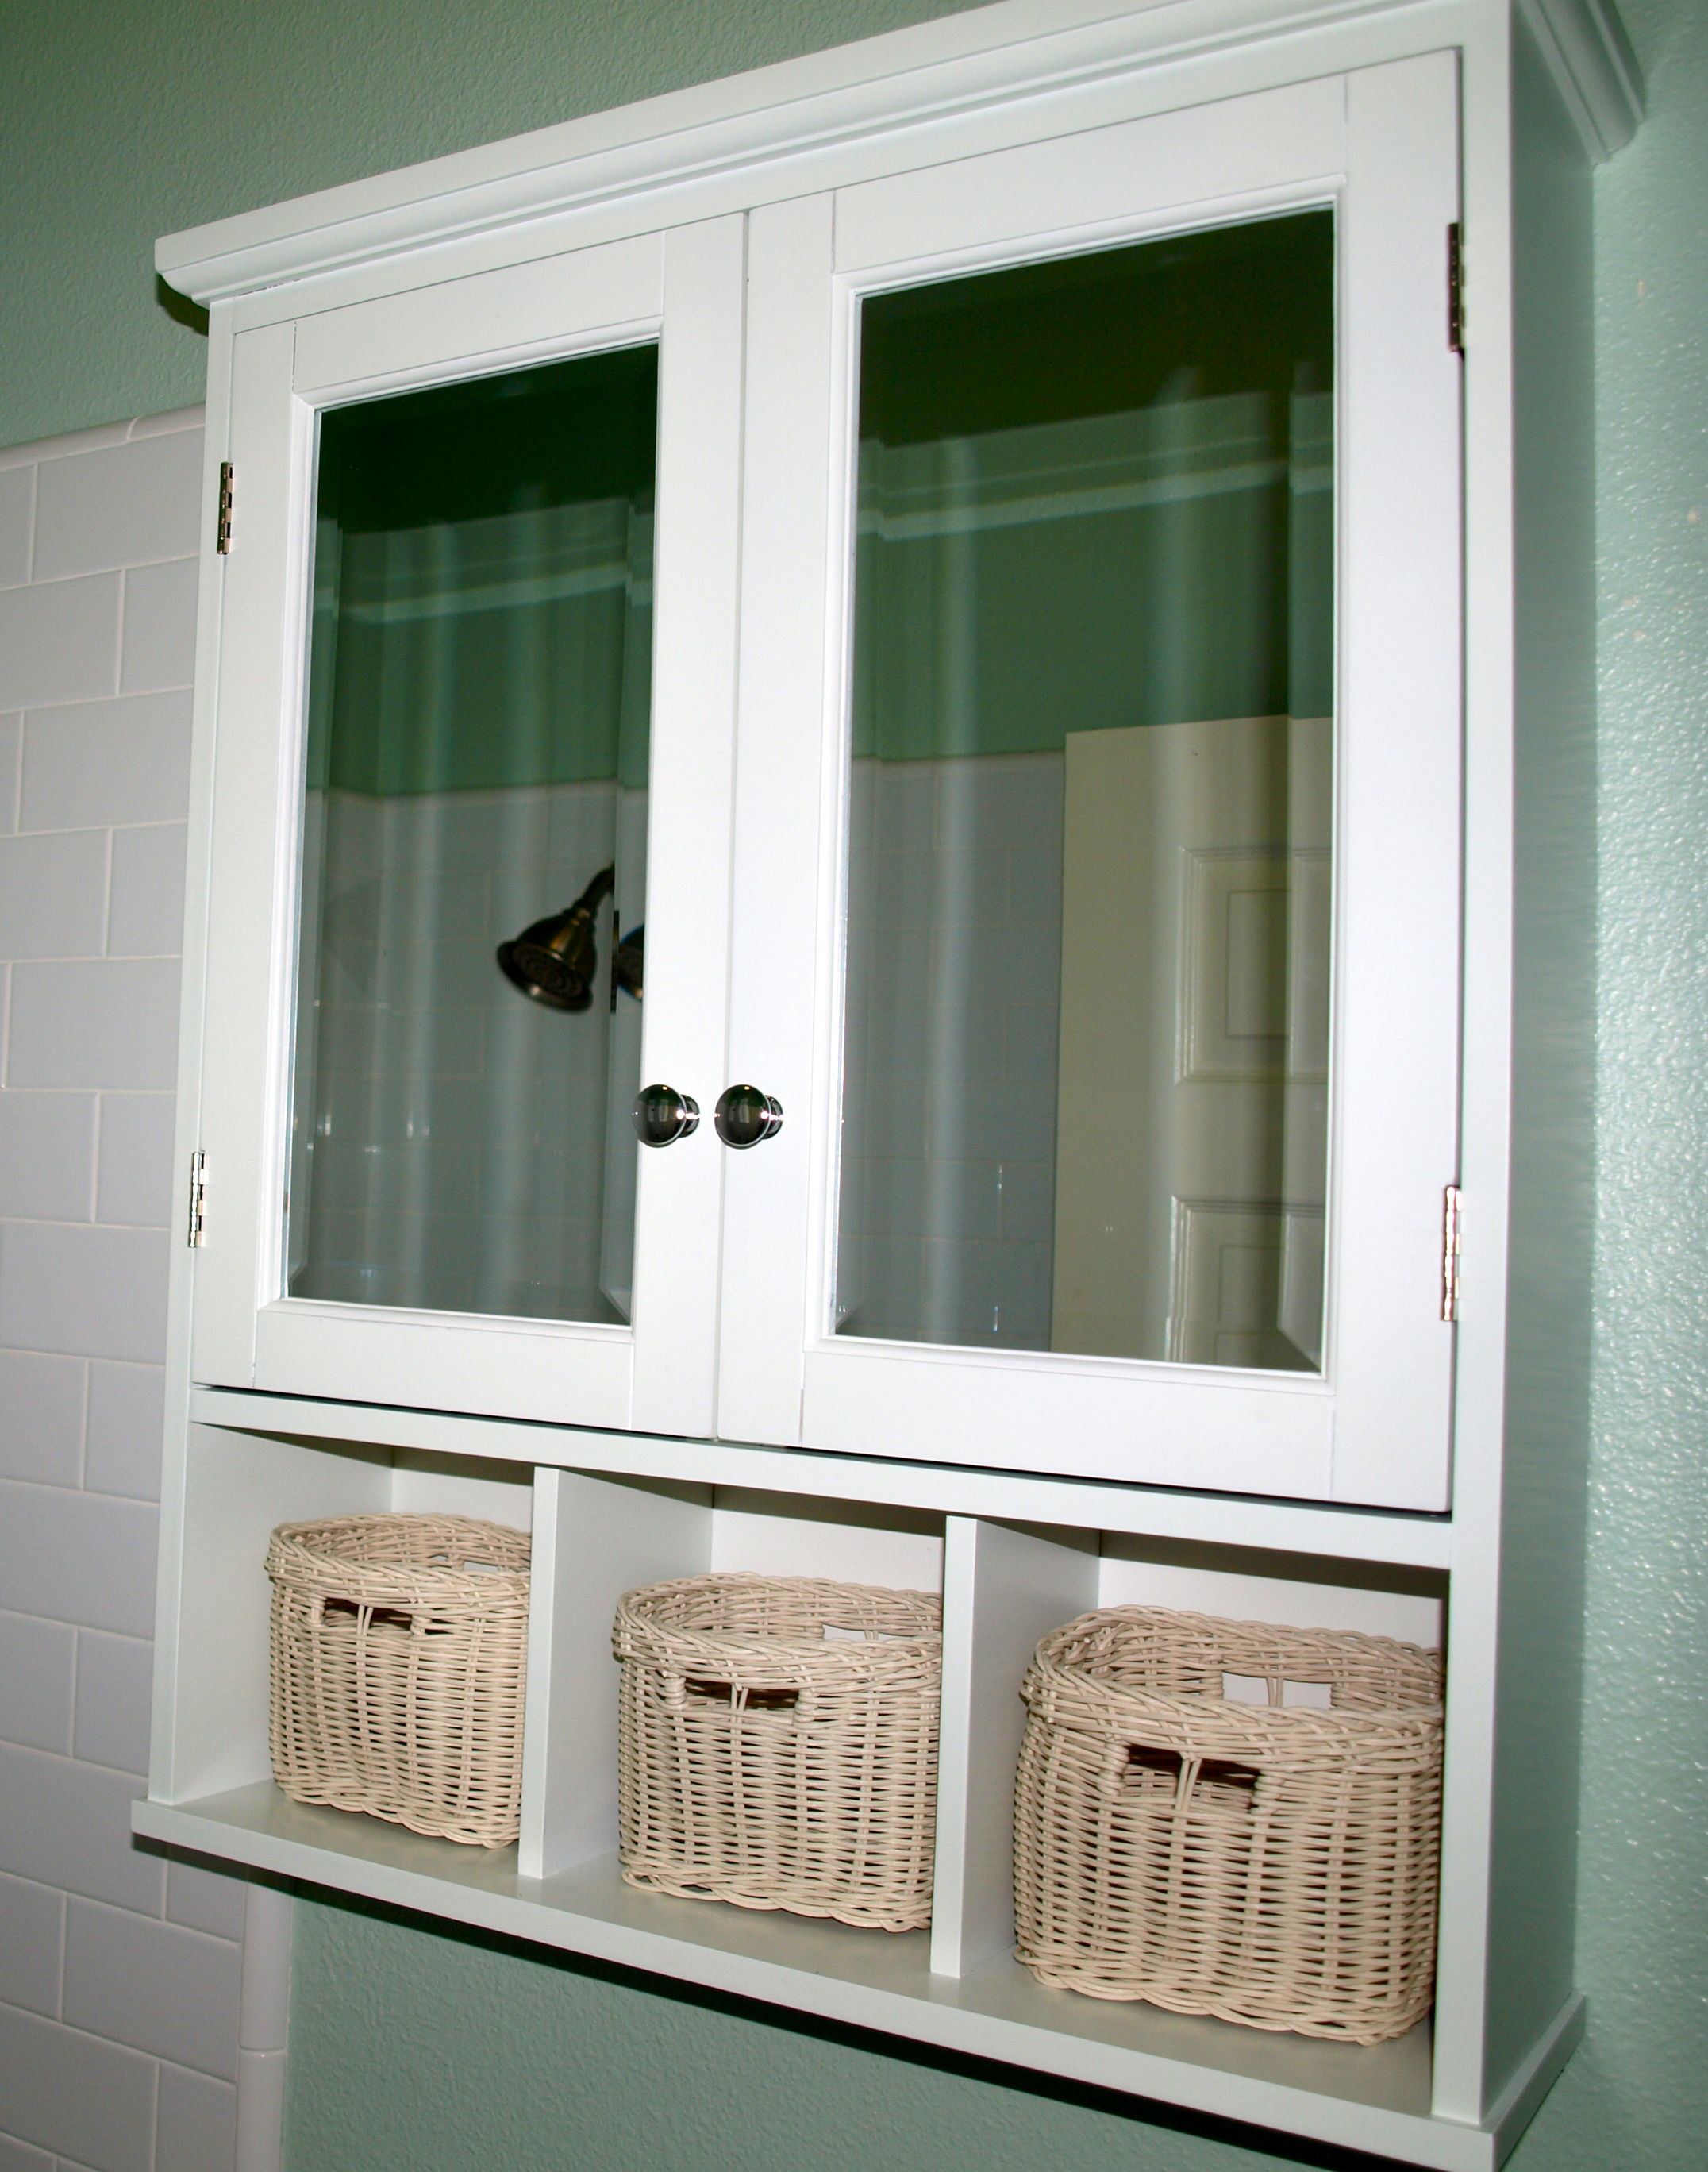 small cabinet spaces bathroom storage example cabinets complete ideas